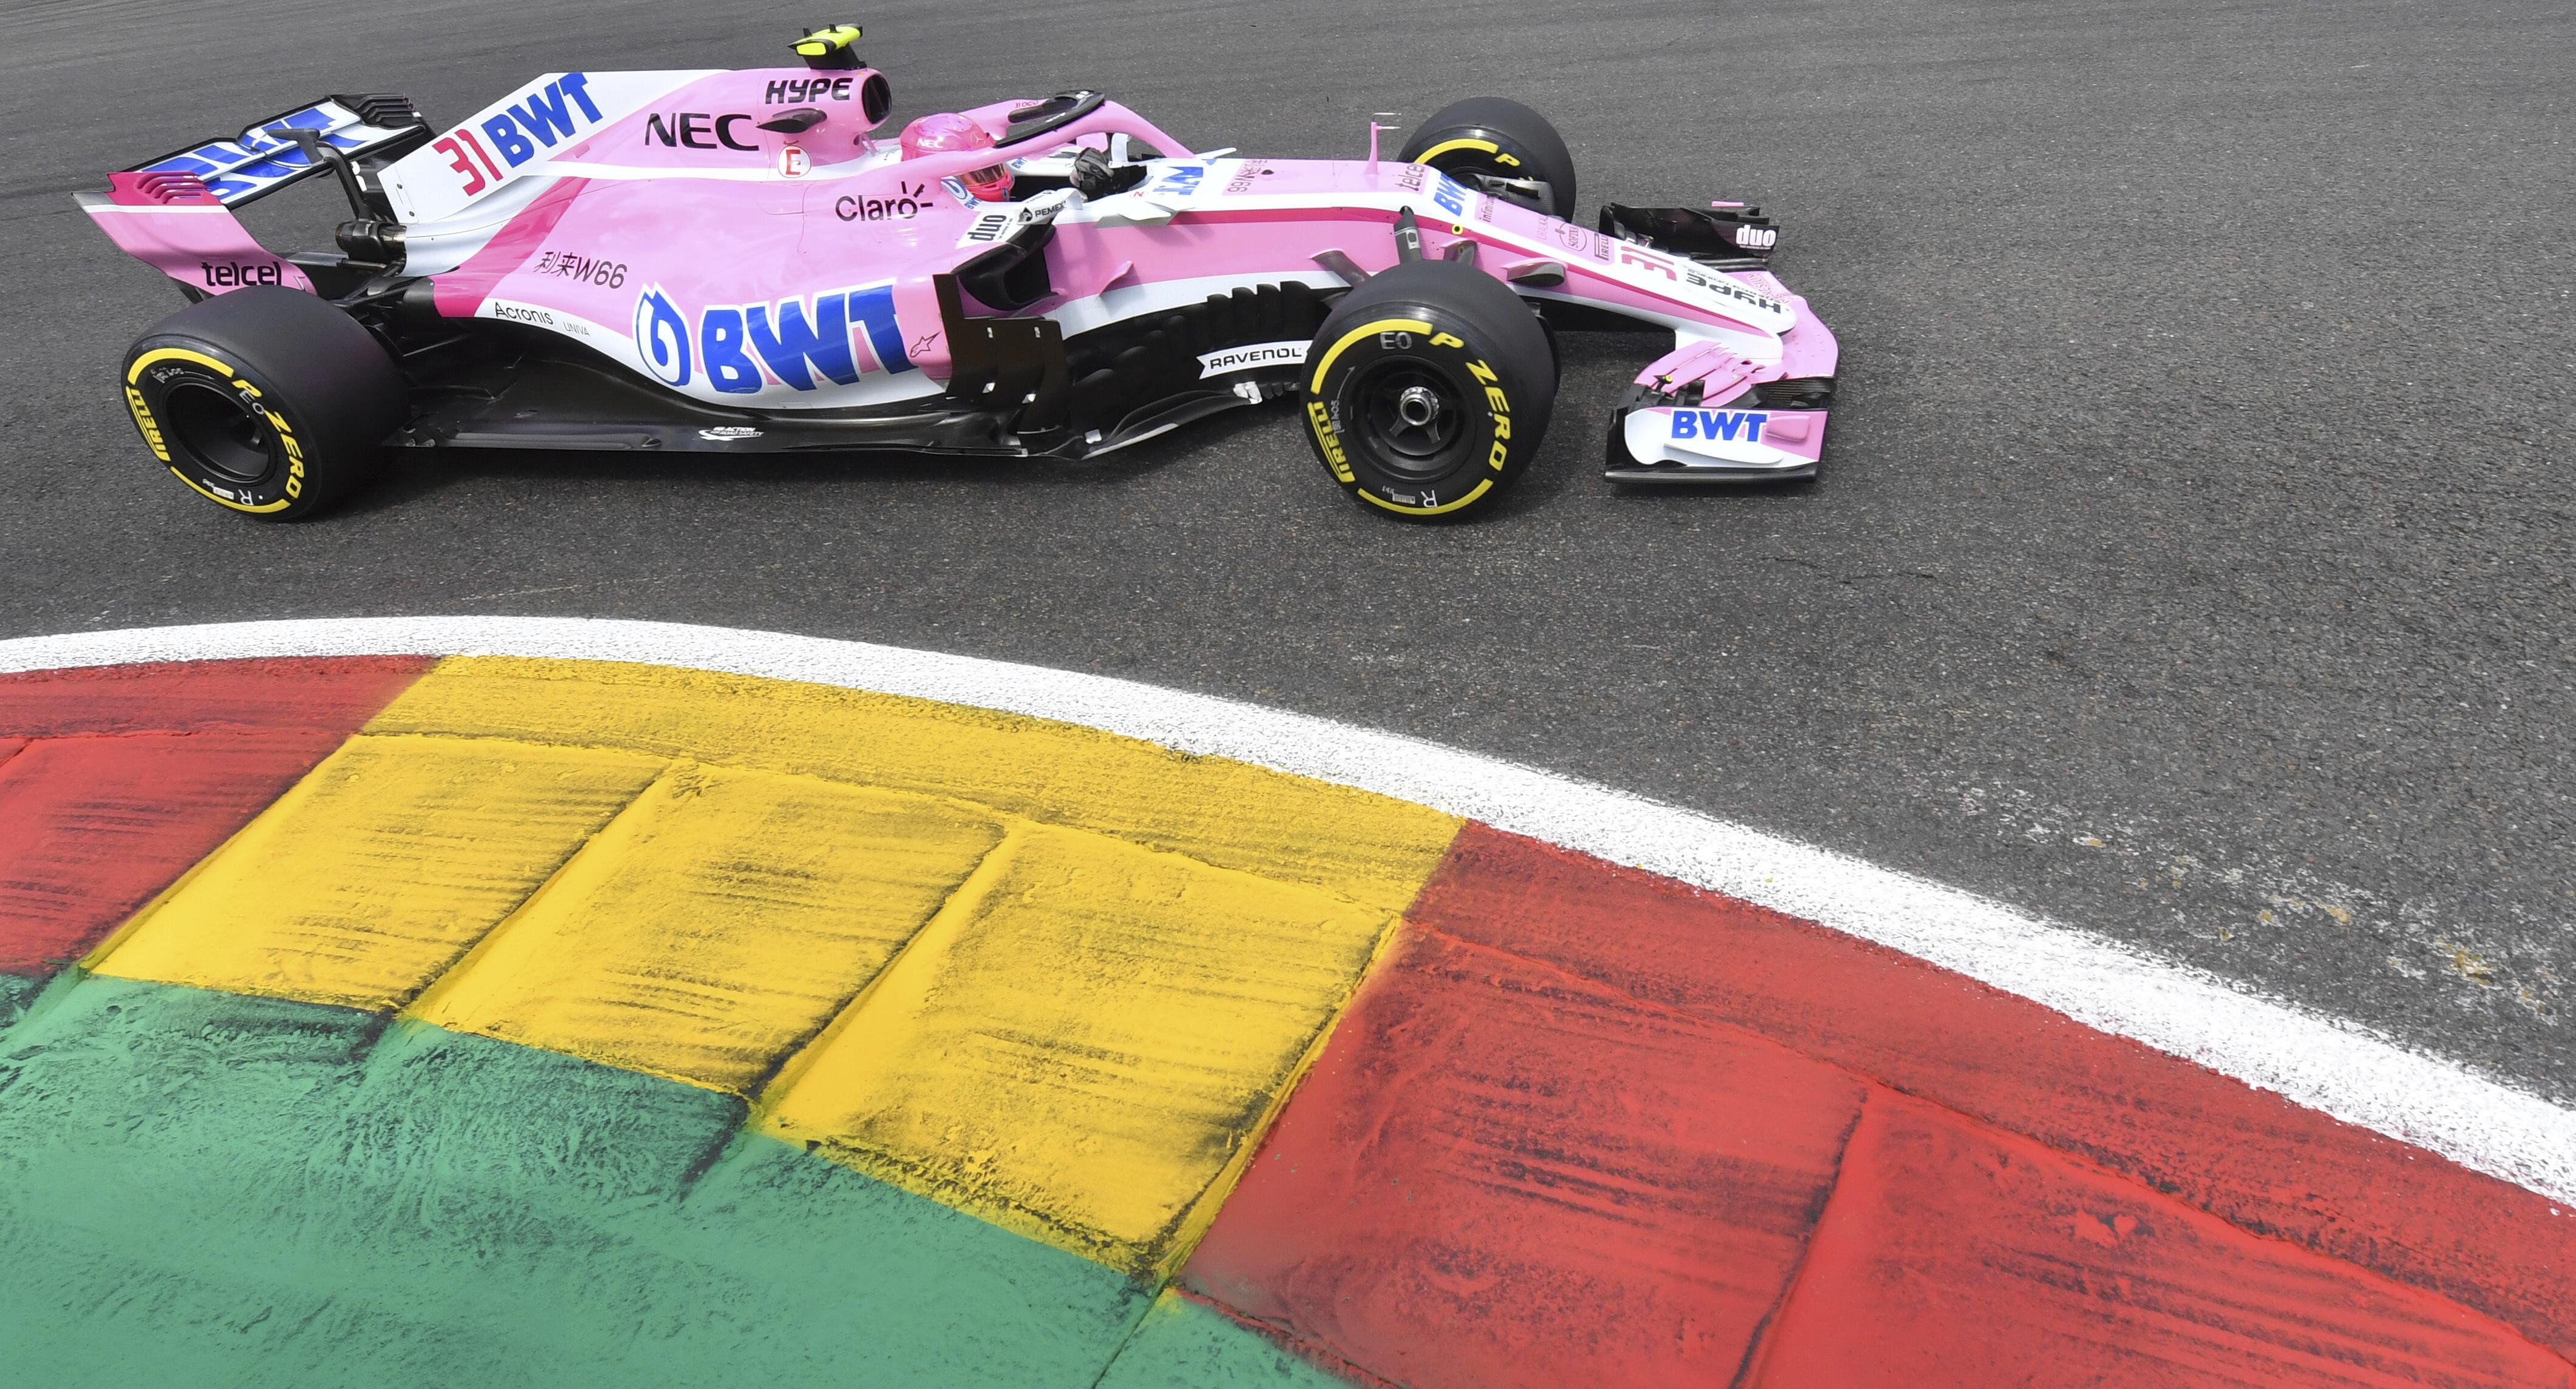 Ocon will be looking to improve on his best finish of this season when he finished eighth in Monaco and Austria